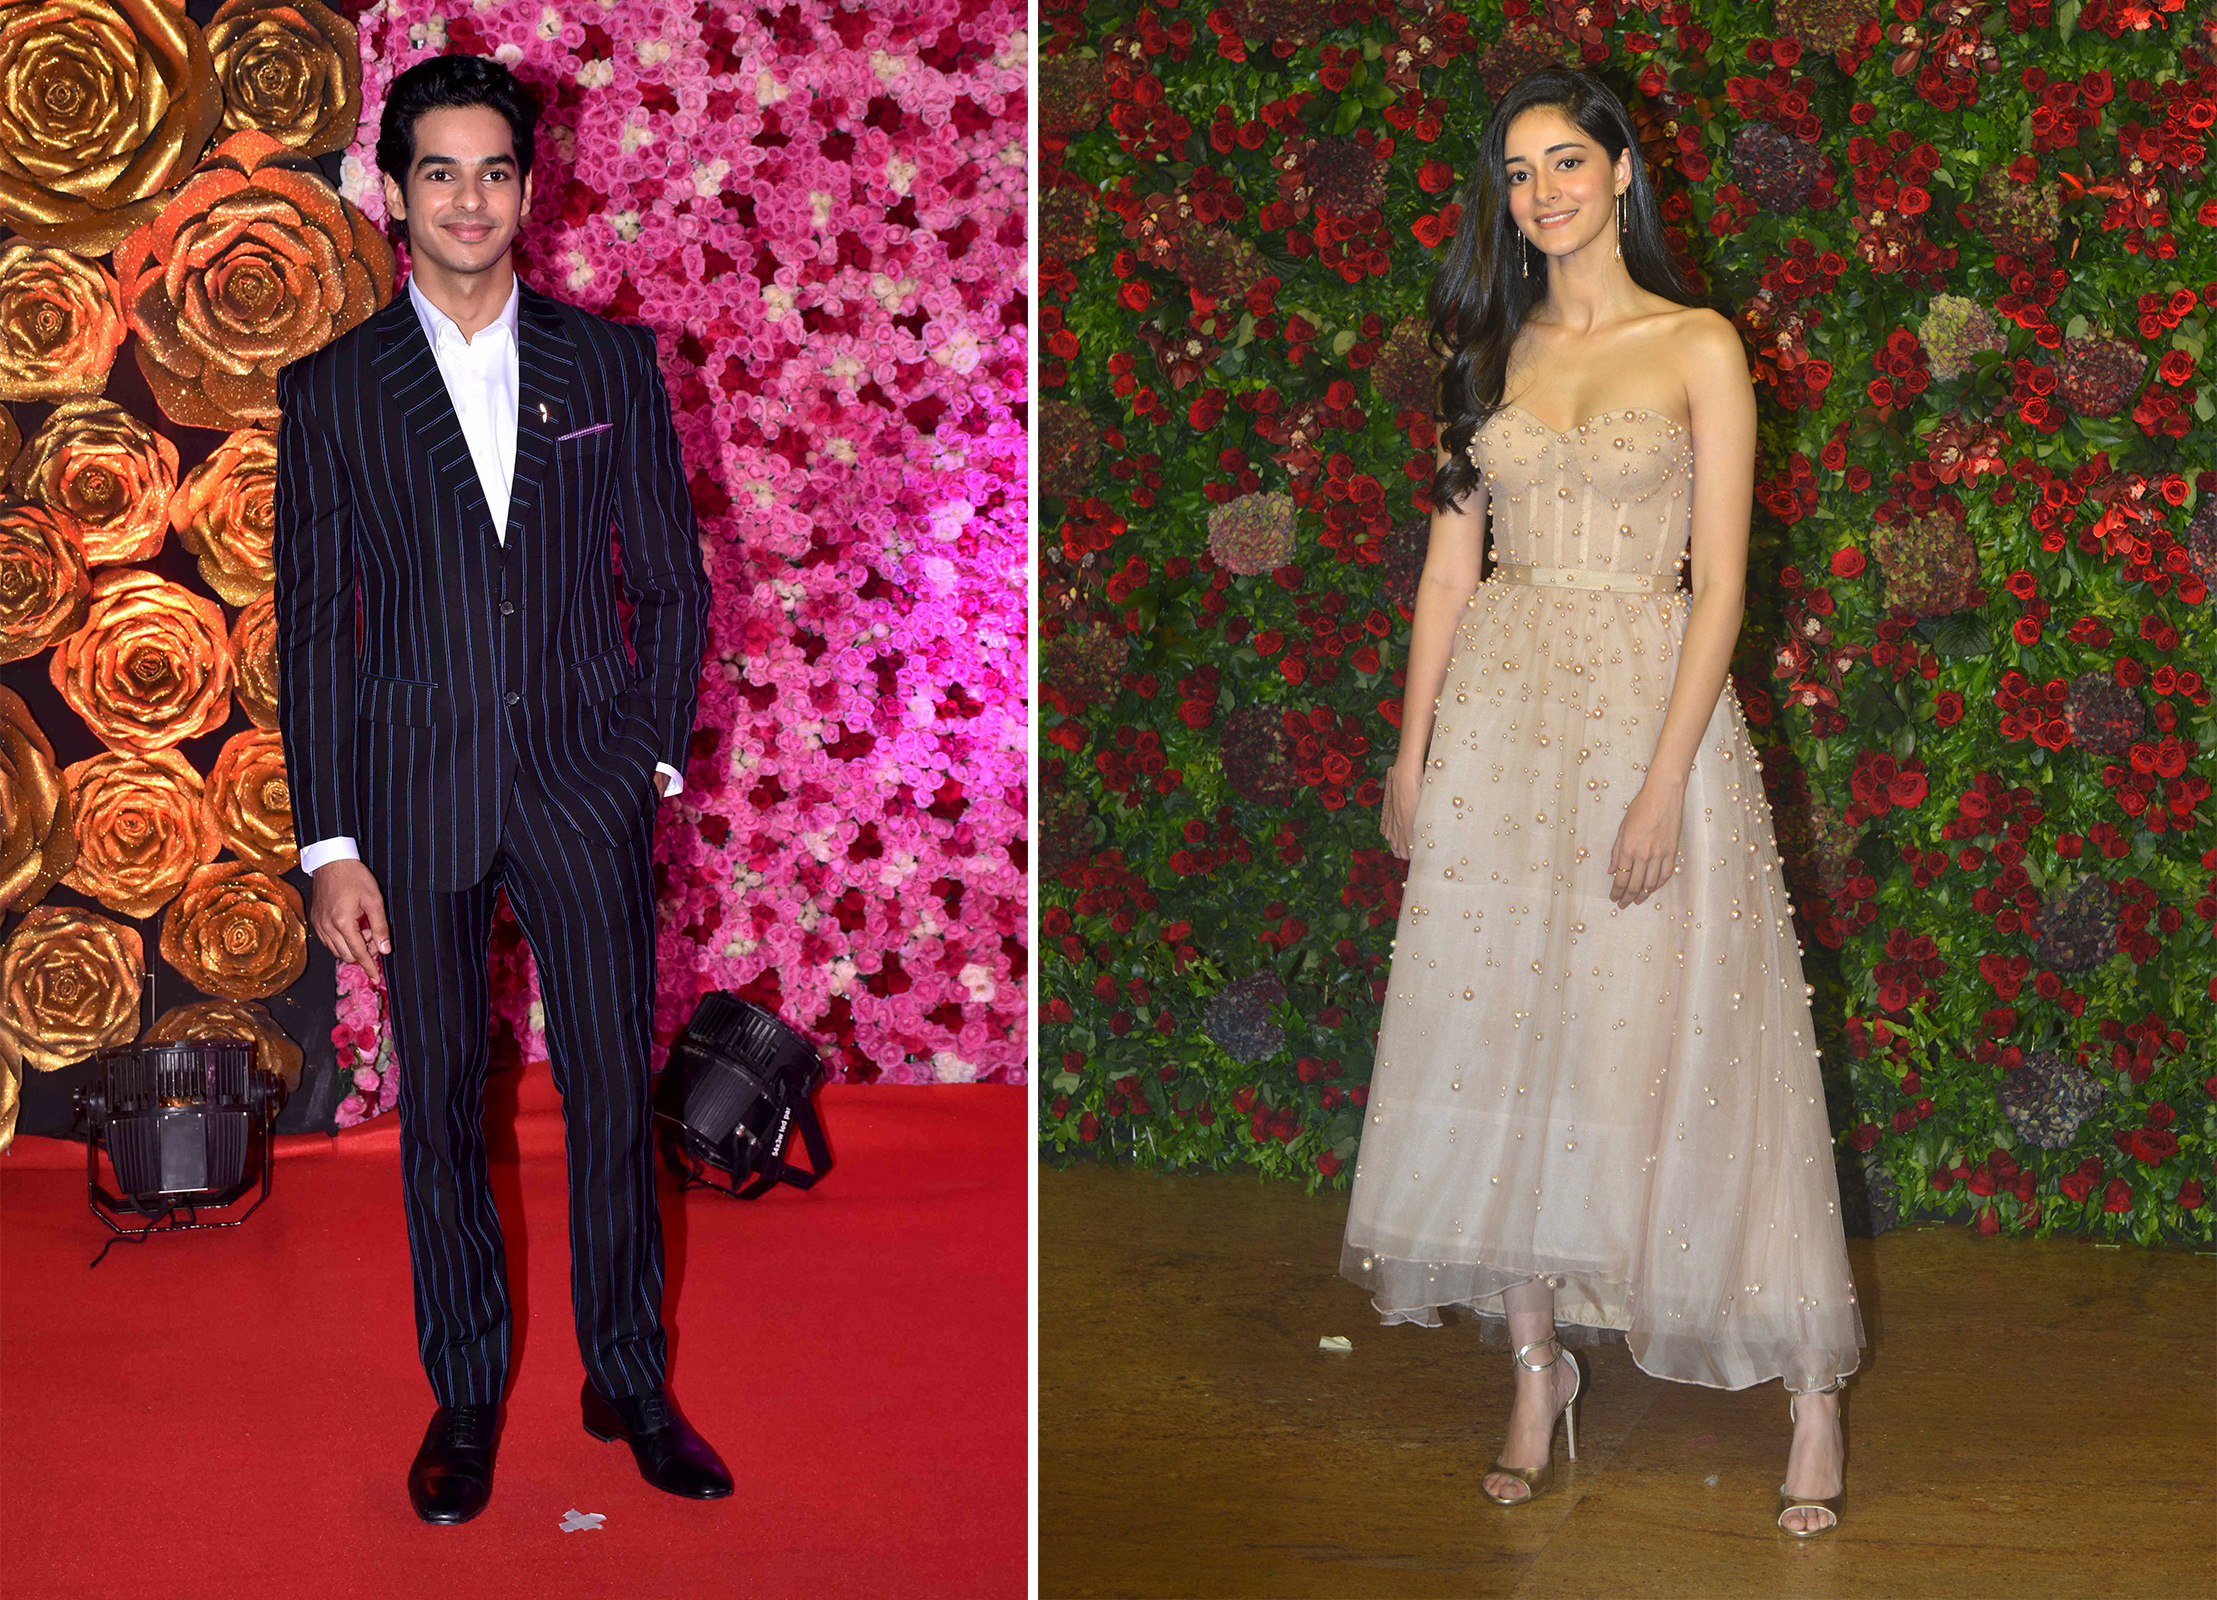 Left: Actor Ishaan Khatter seen on the red carpet during the LUX Awards on Nov. 18, 2018 in Mumbai; Right: Actor Ananya Panday at Ranveer Singh and Deepika Padukone's reception on Dec. 1, 2018 in Mumbai